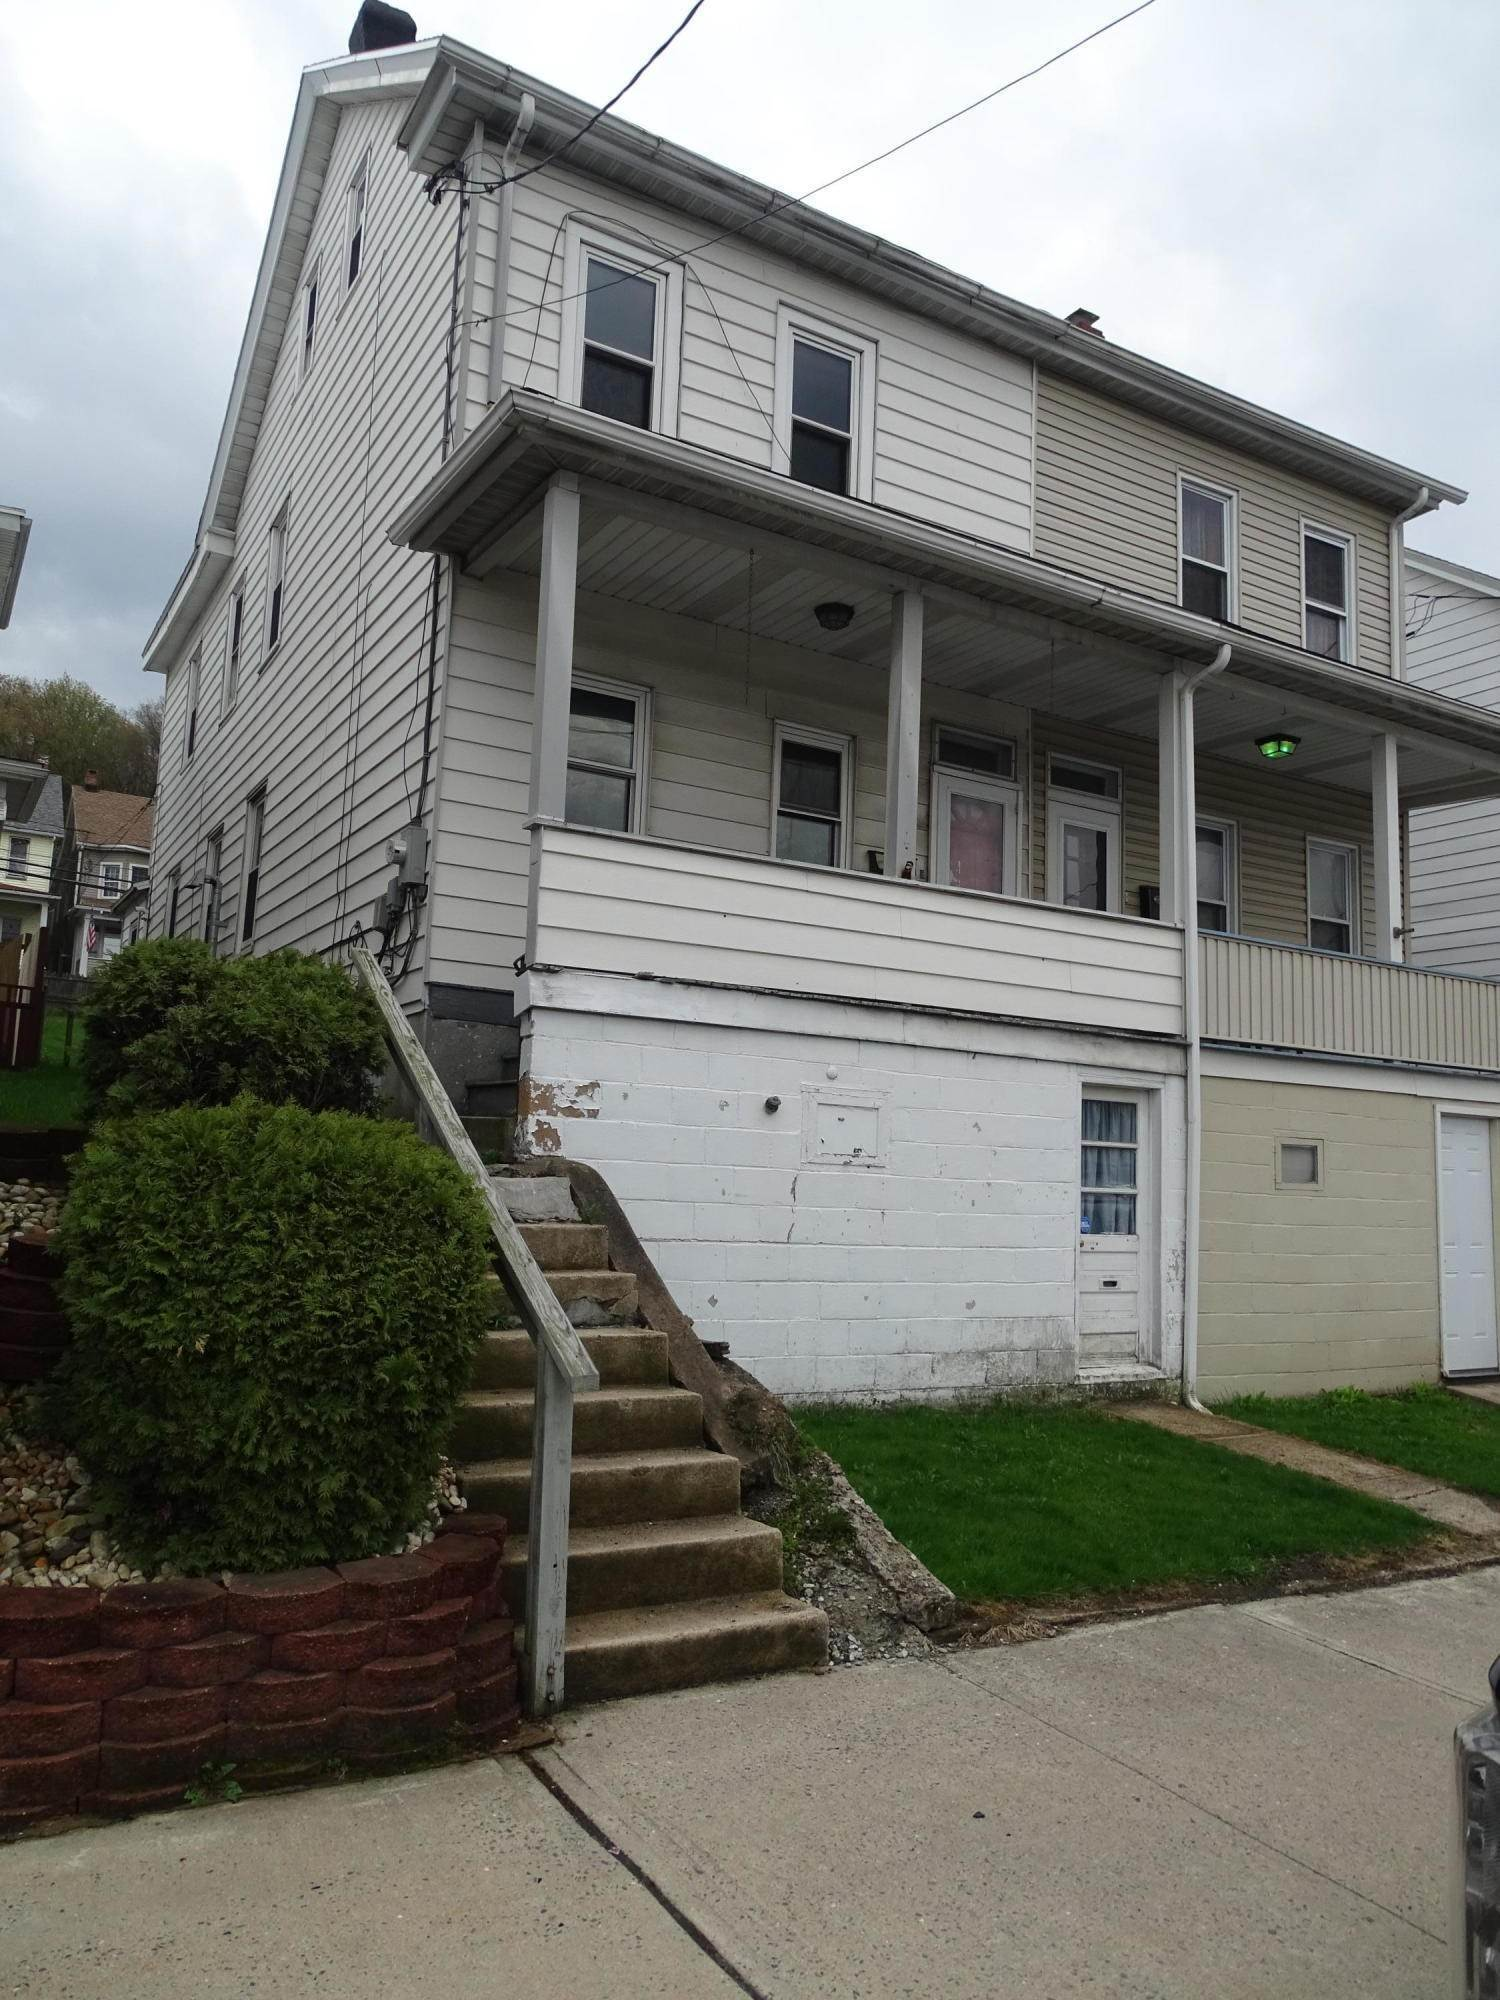 1. Single Family Homes for Sale at 40 E Abbott St Lansford, Pennsylvania 18232 United States